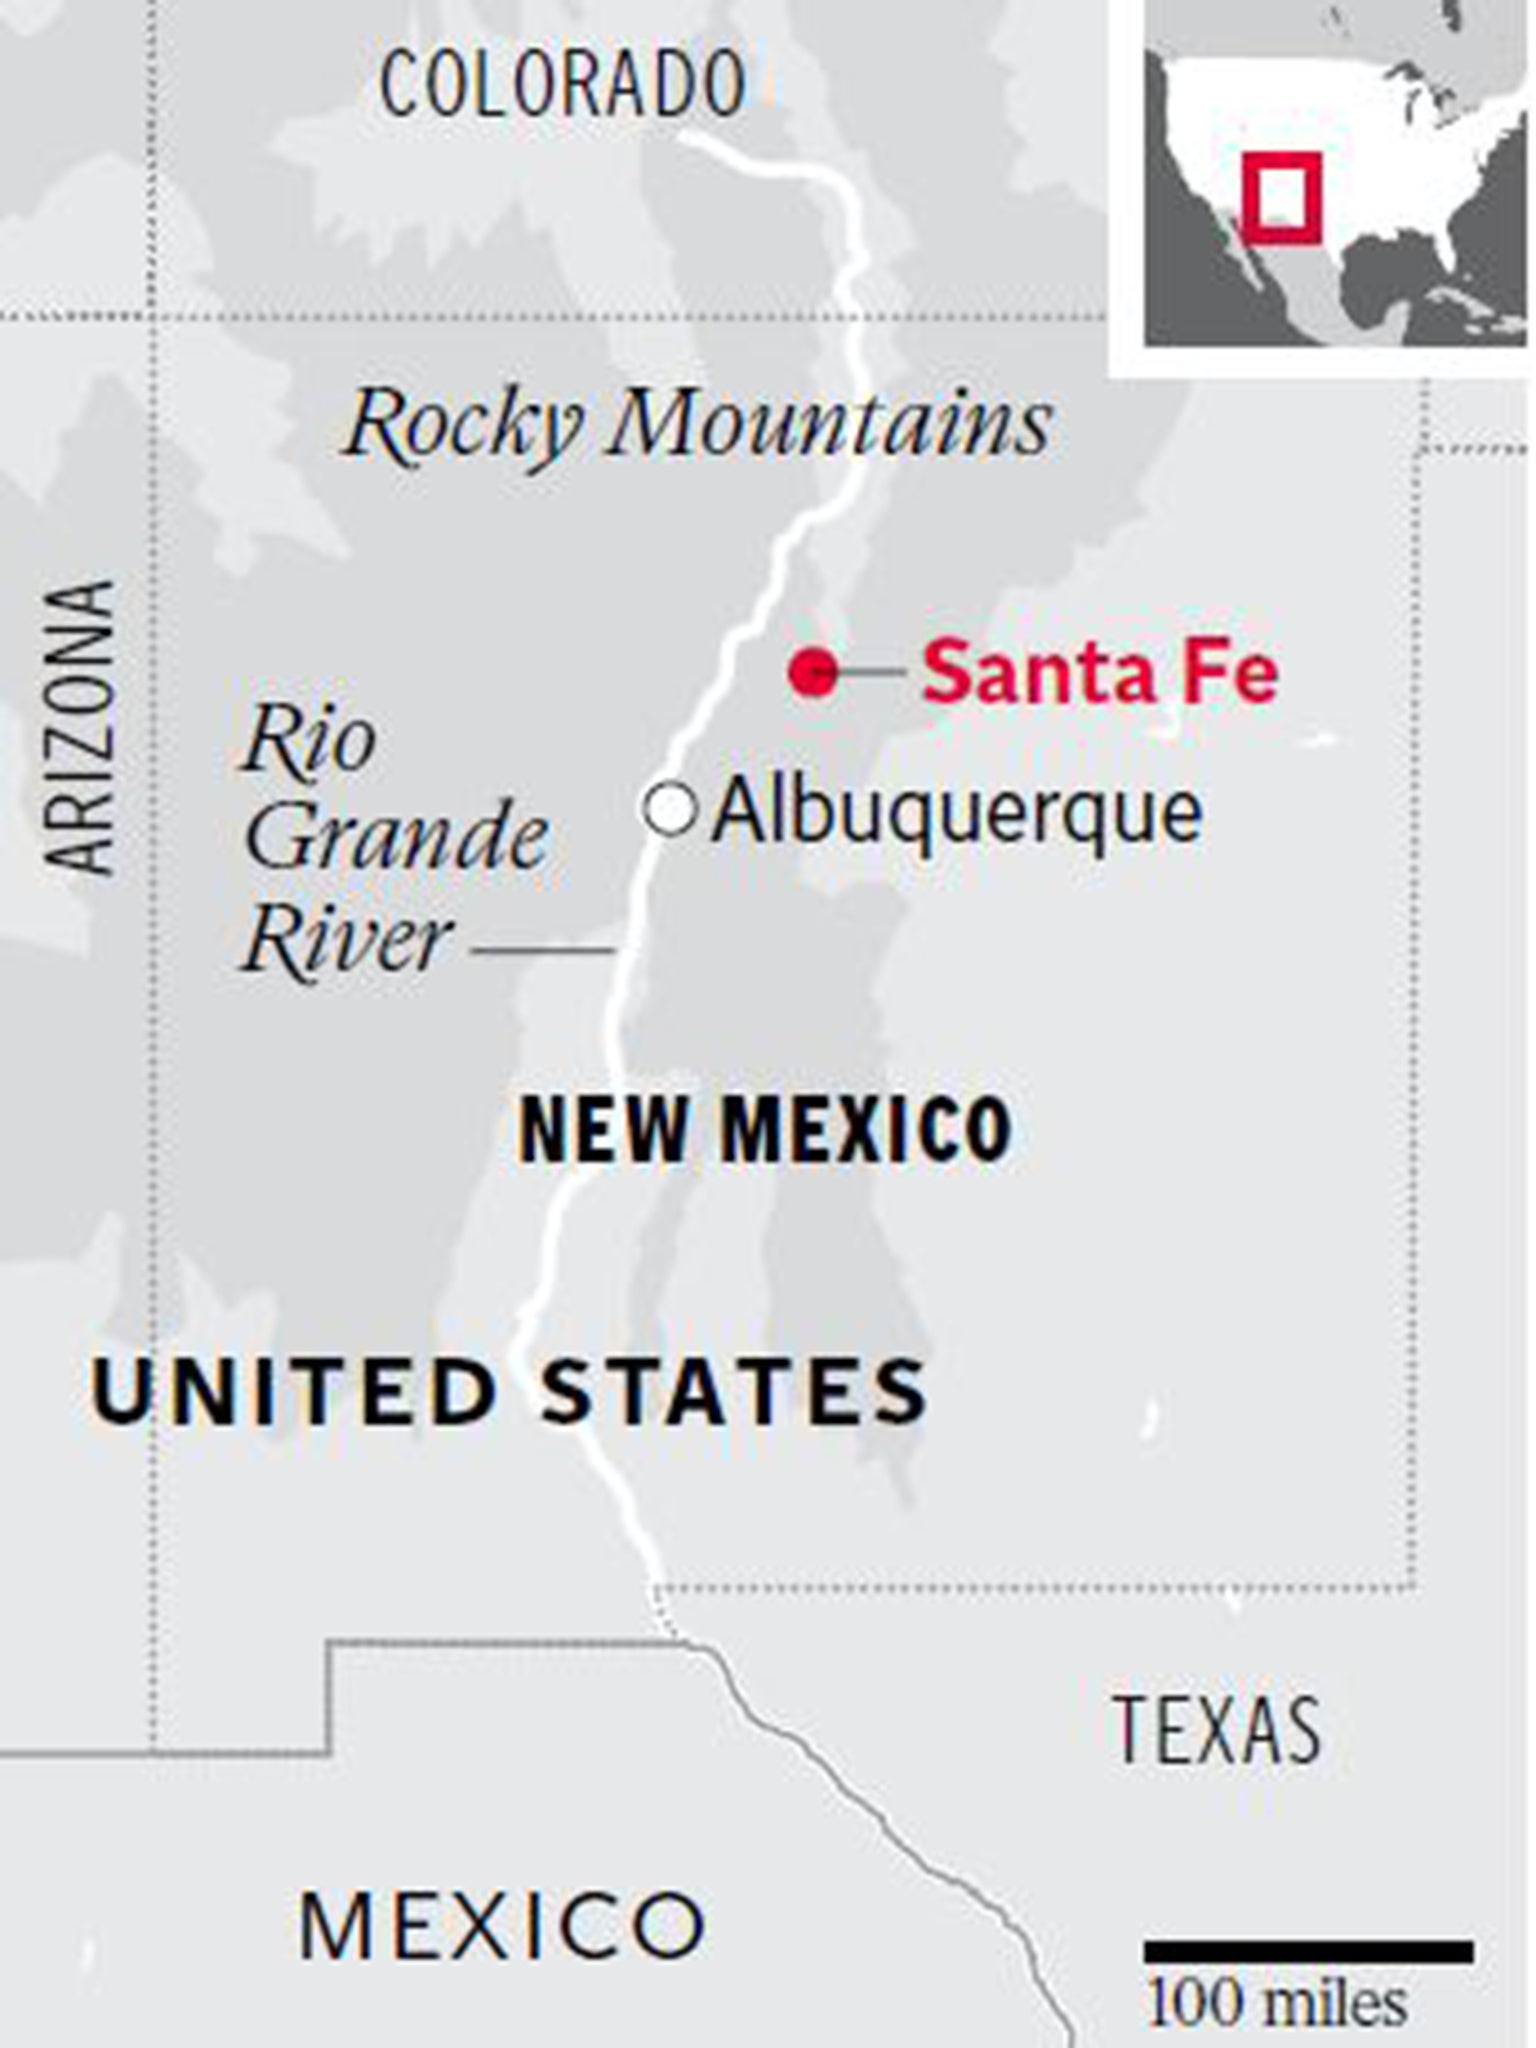 $2m treasure hunt set in New Mexico by Forrest Fenn turns into